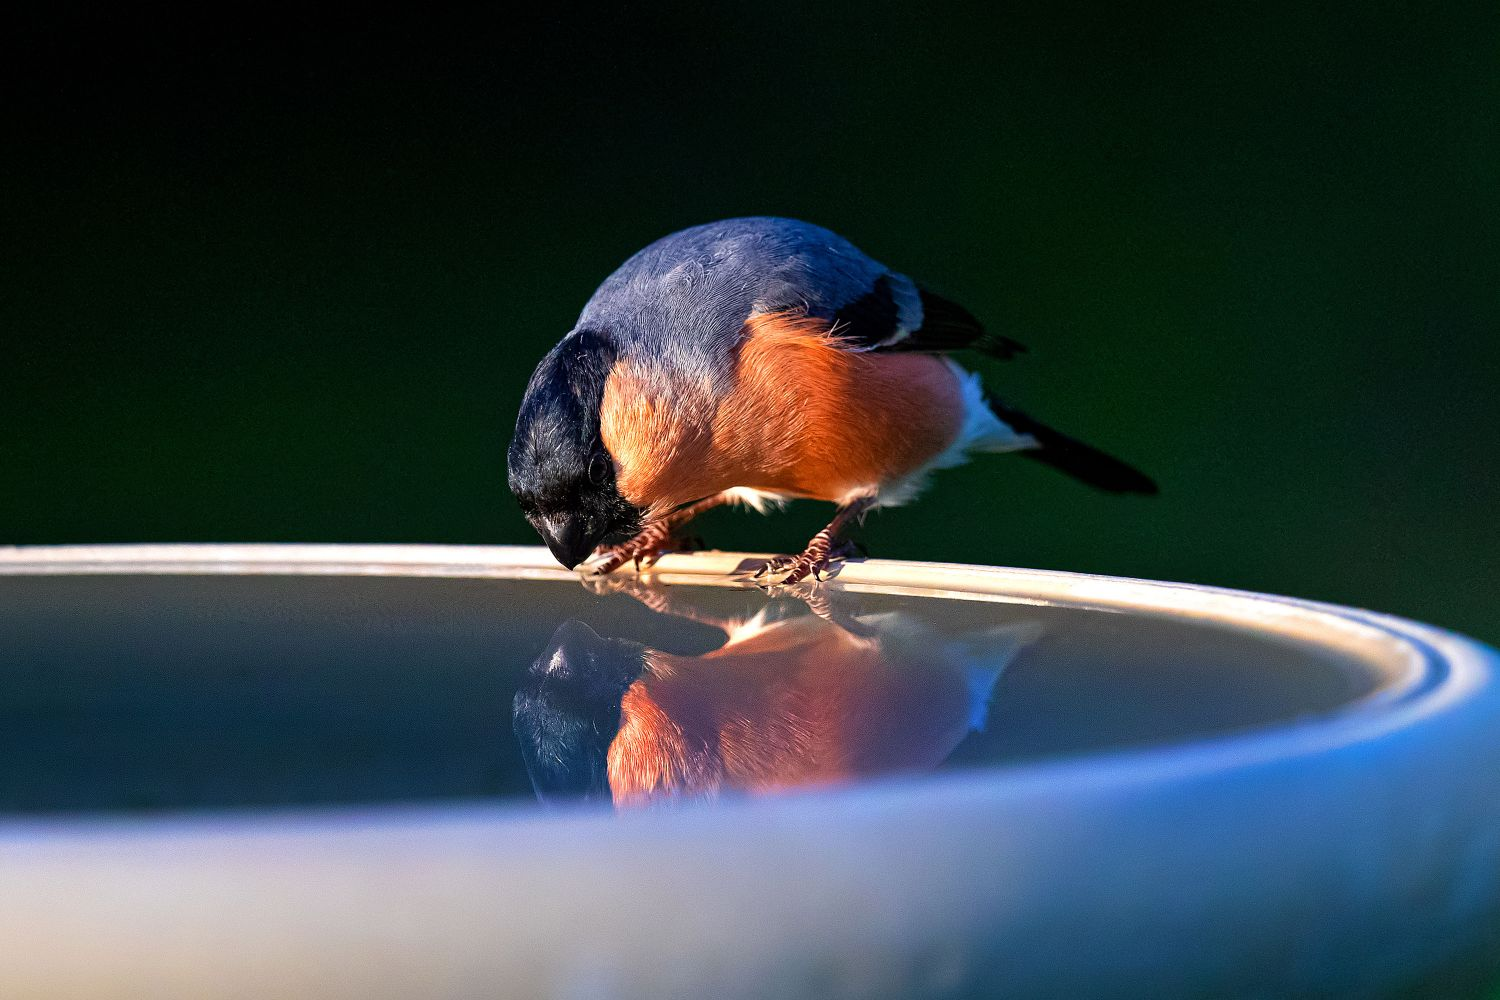 Bullfinch reflection in a pool of water by Martin Lawrence